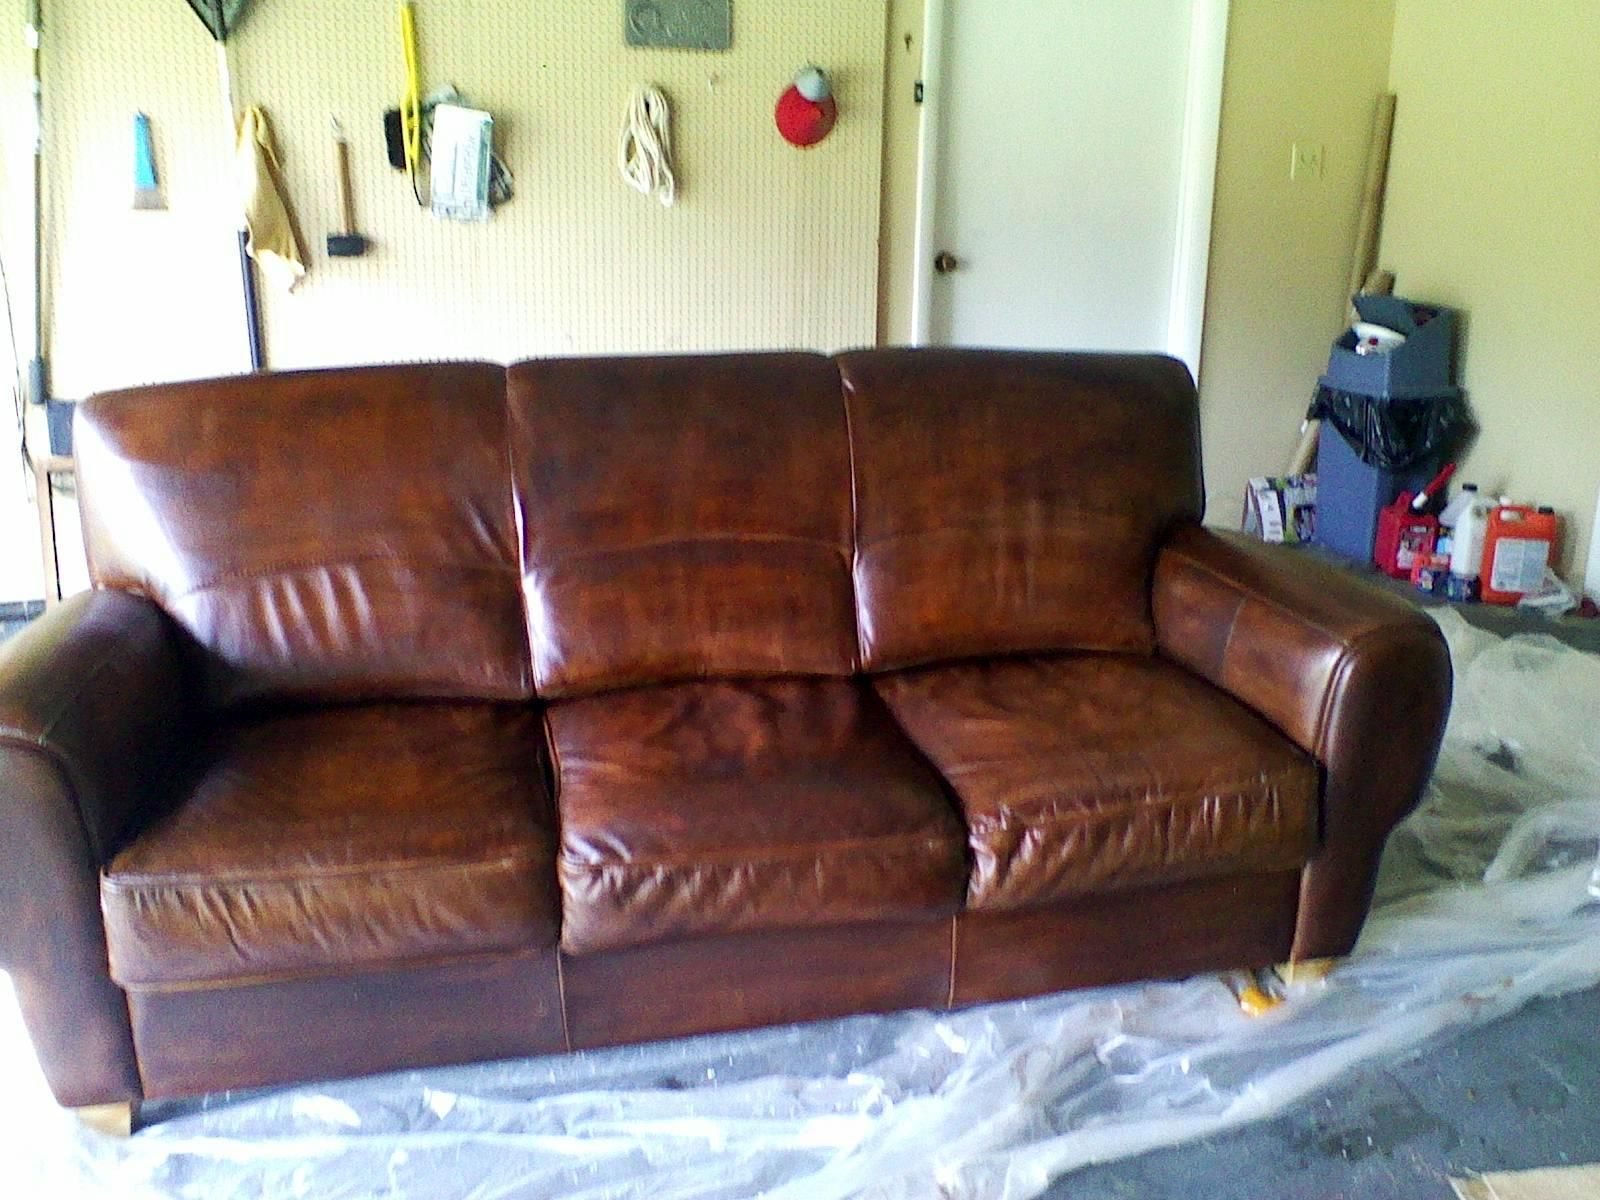 Weeds How To Dye Or Stain Leather Furniture Leather Furniture Leather Couch Red Leather Couches